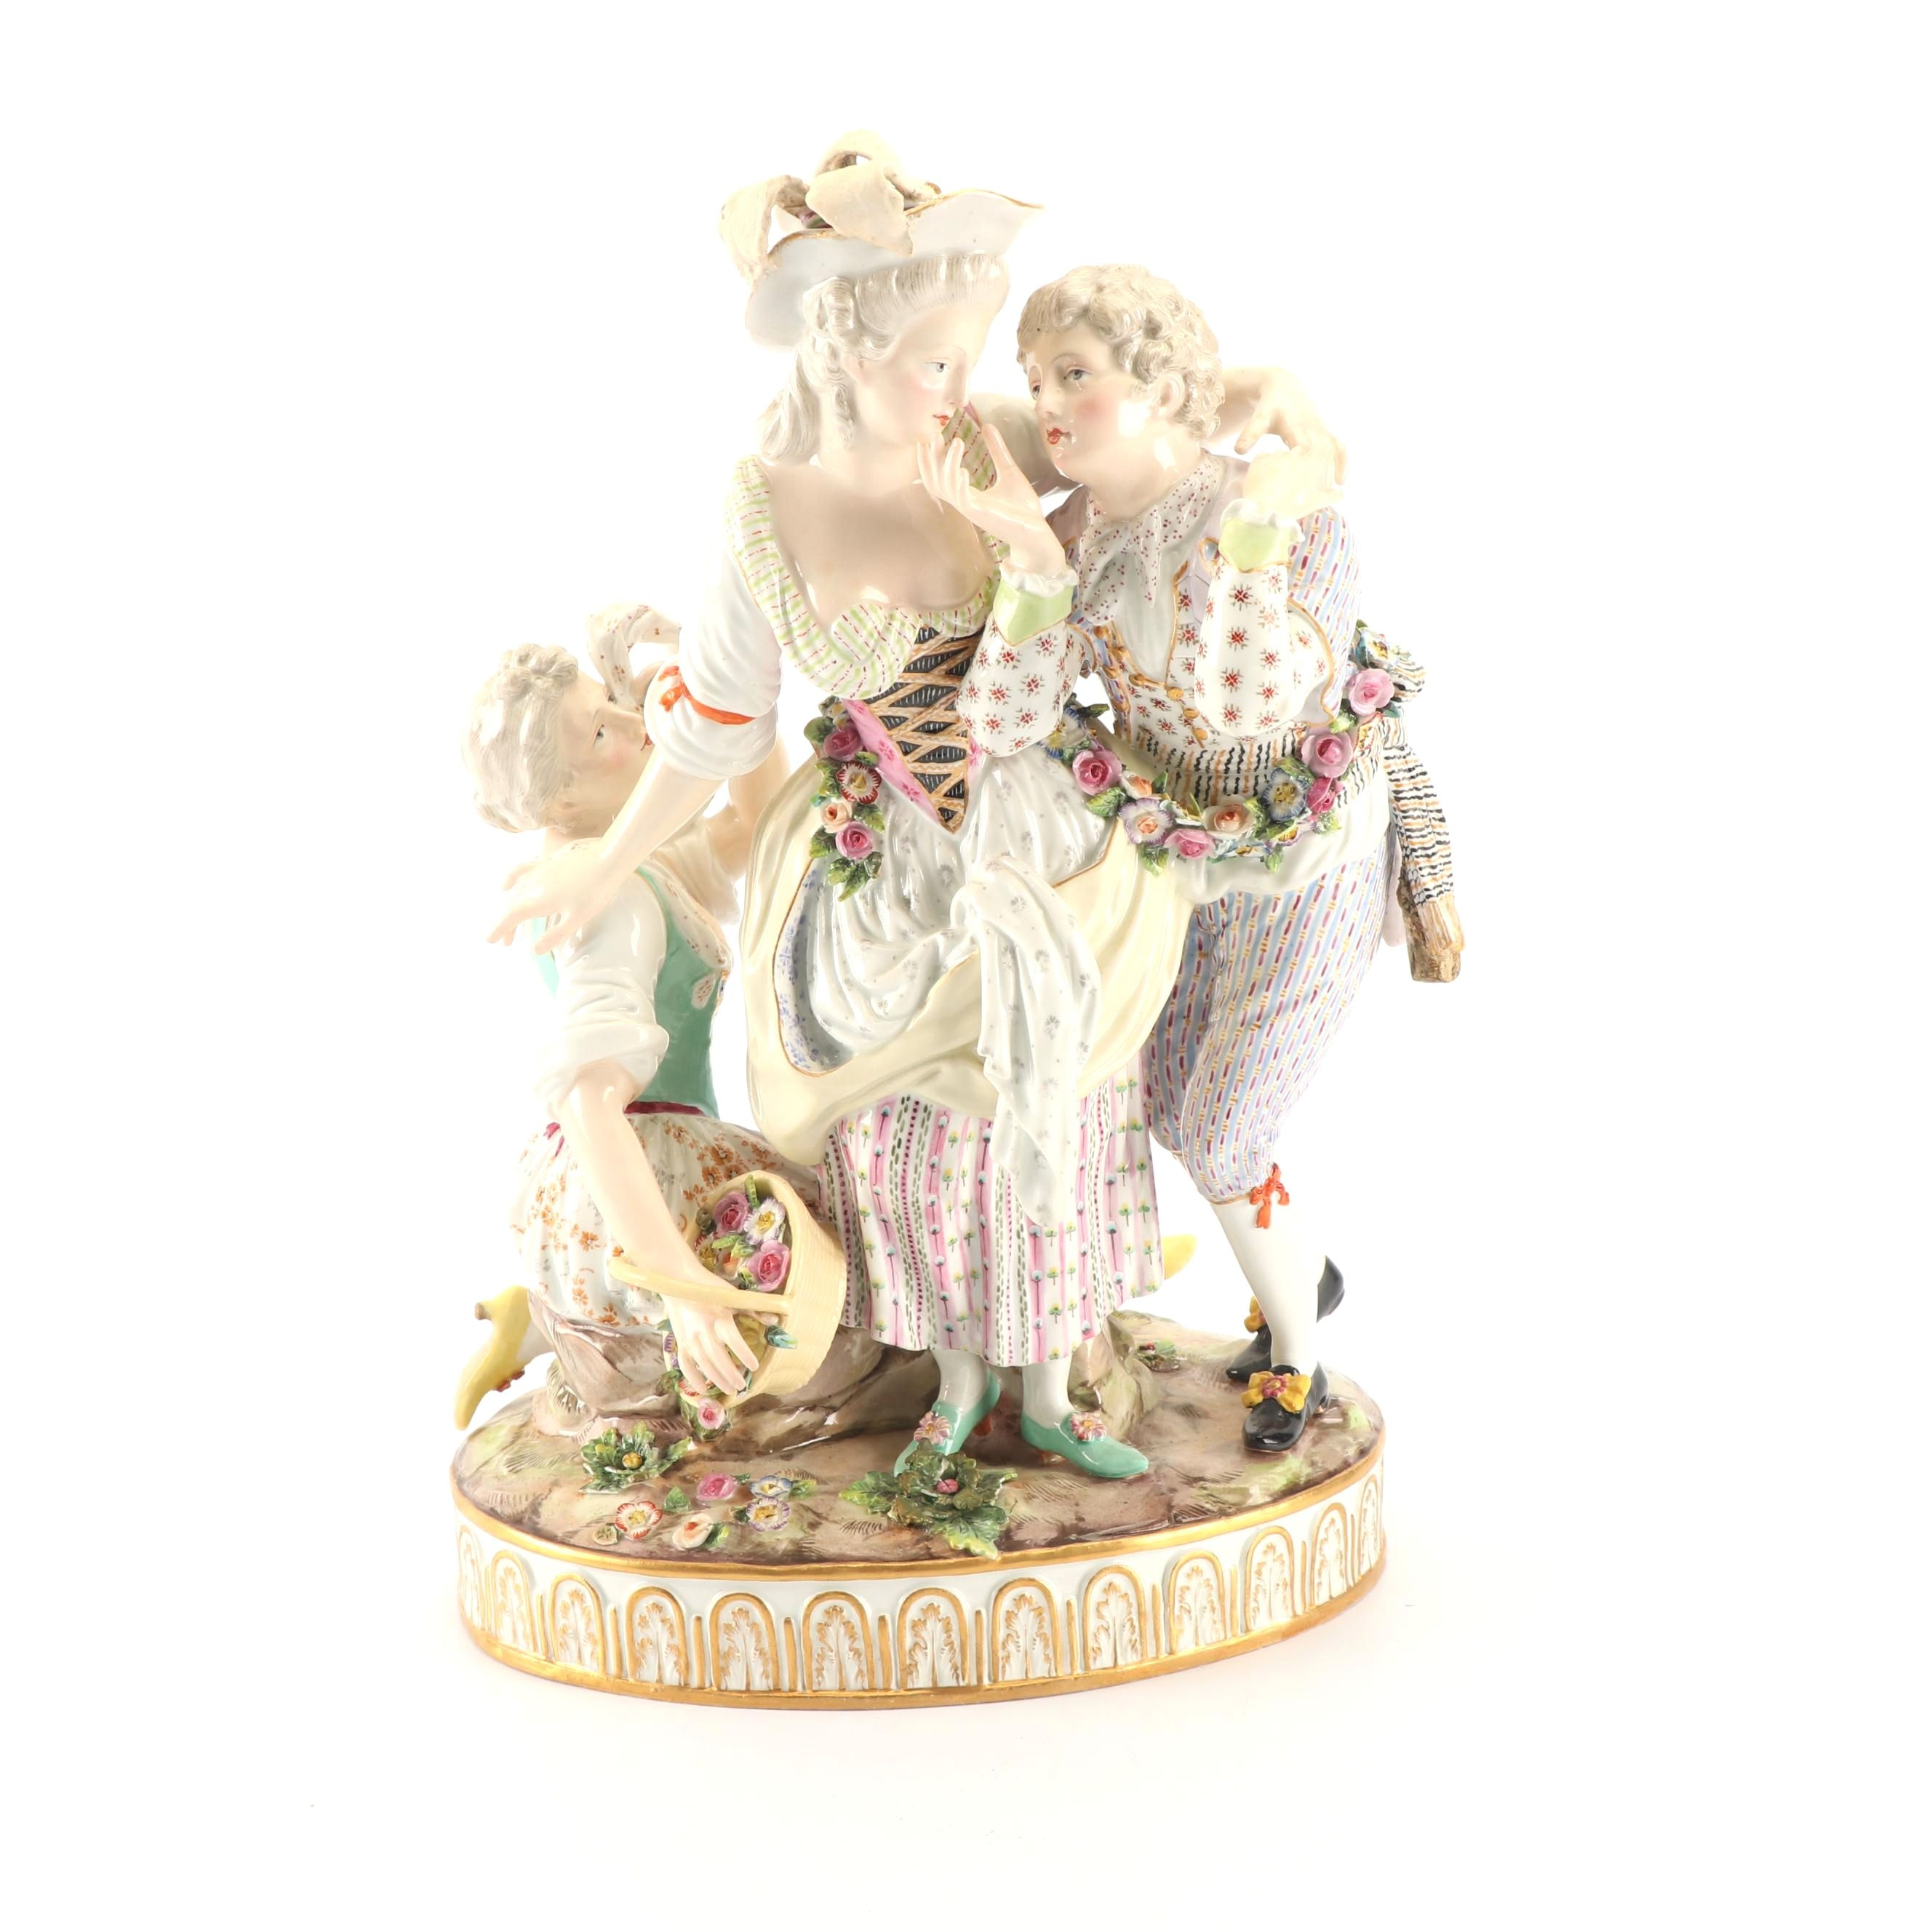 Meissen Porcelain Figurine, Late 19th Century